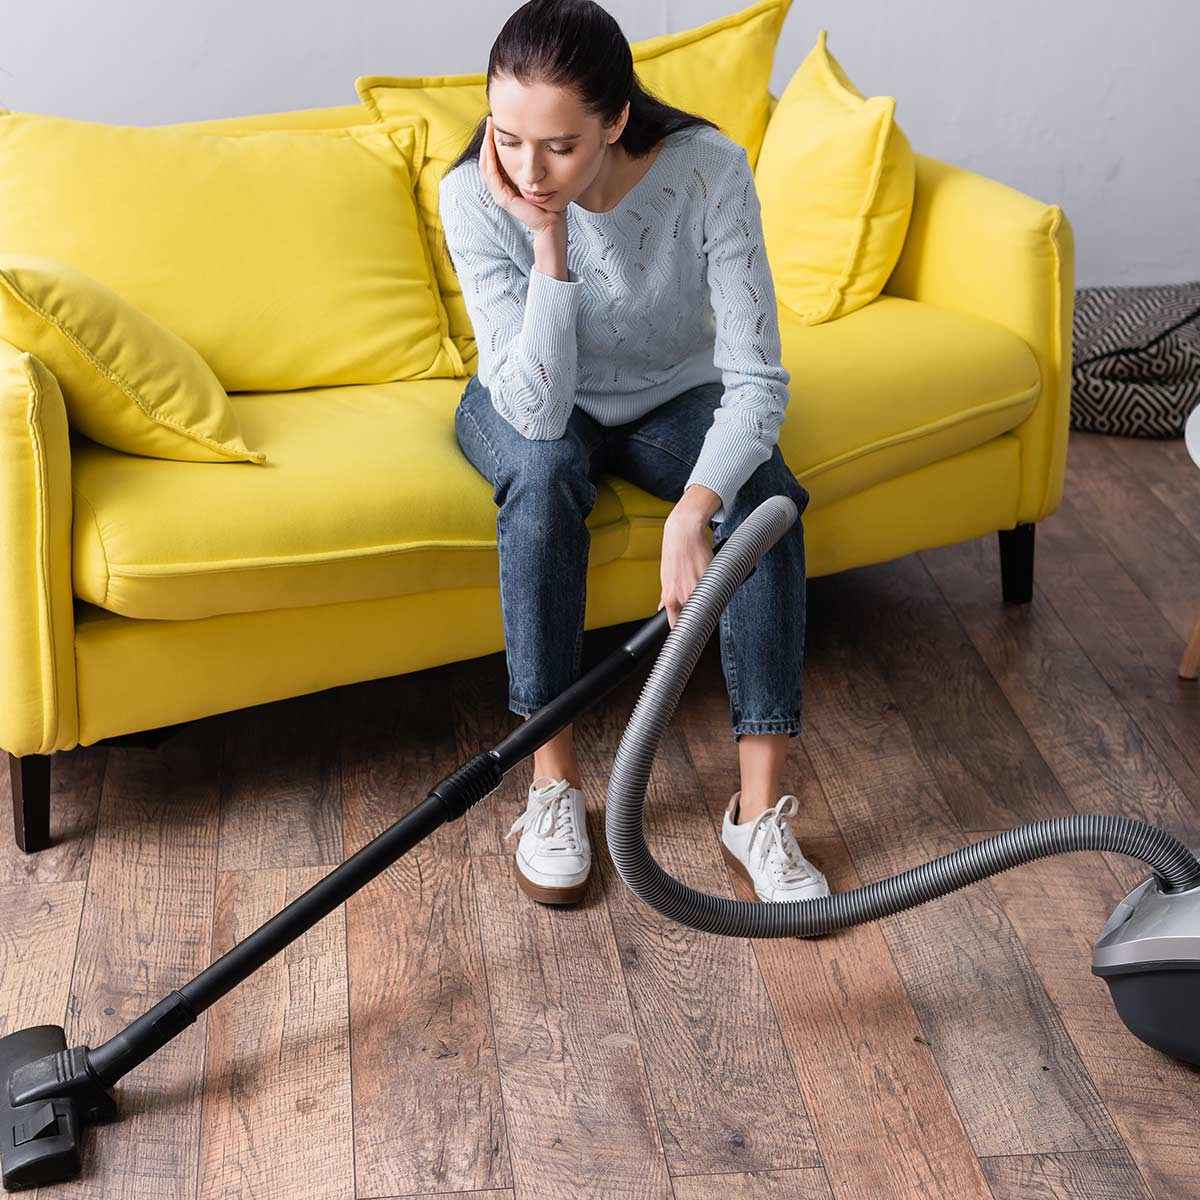 Woman with no energy to clean the house sitting on yellow couch holding part of vacuum.